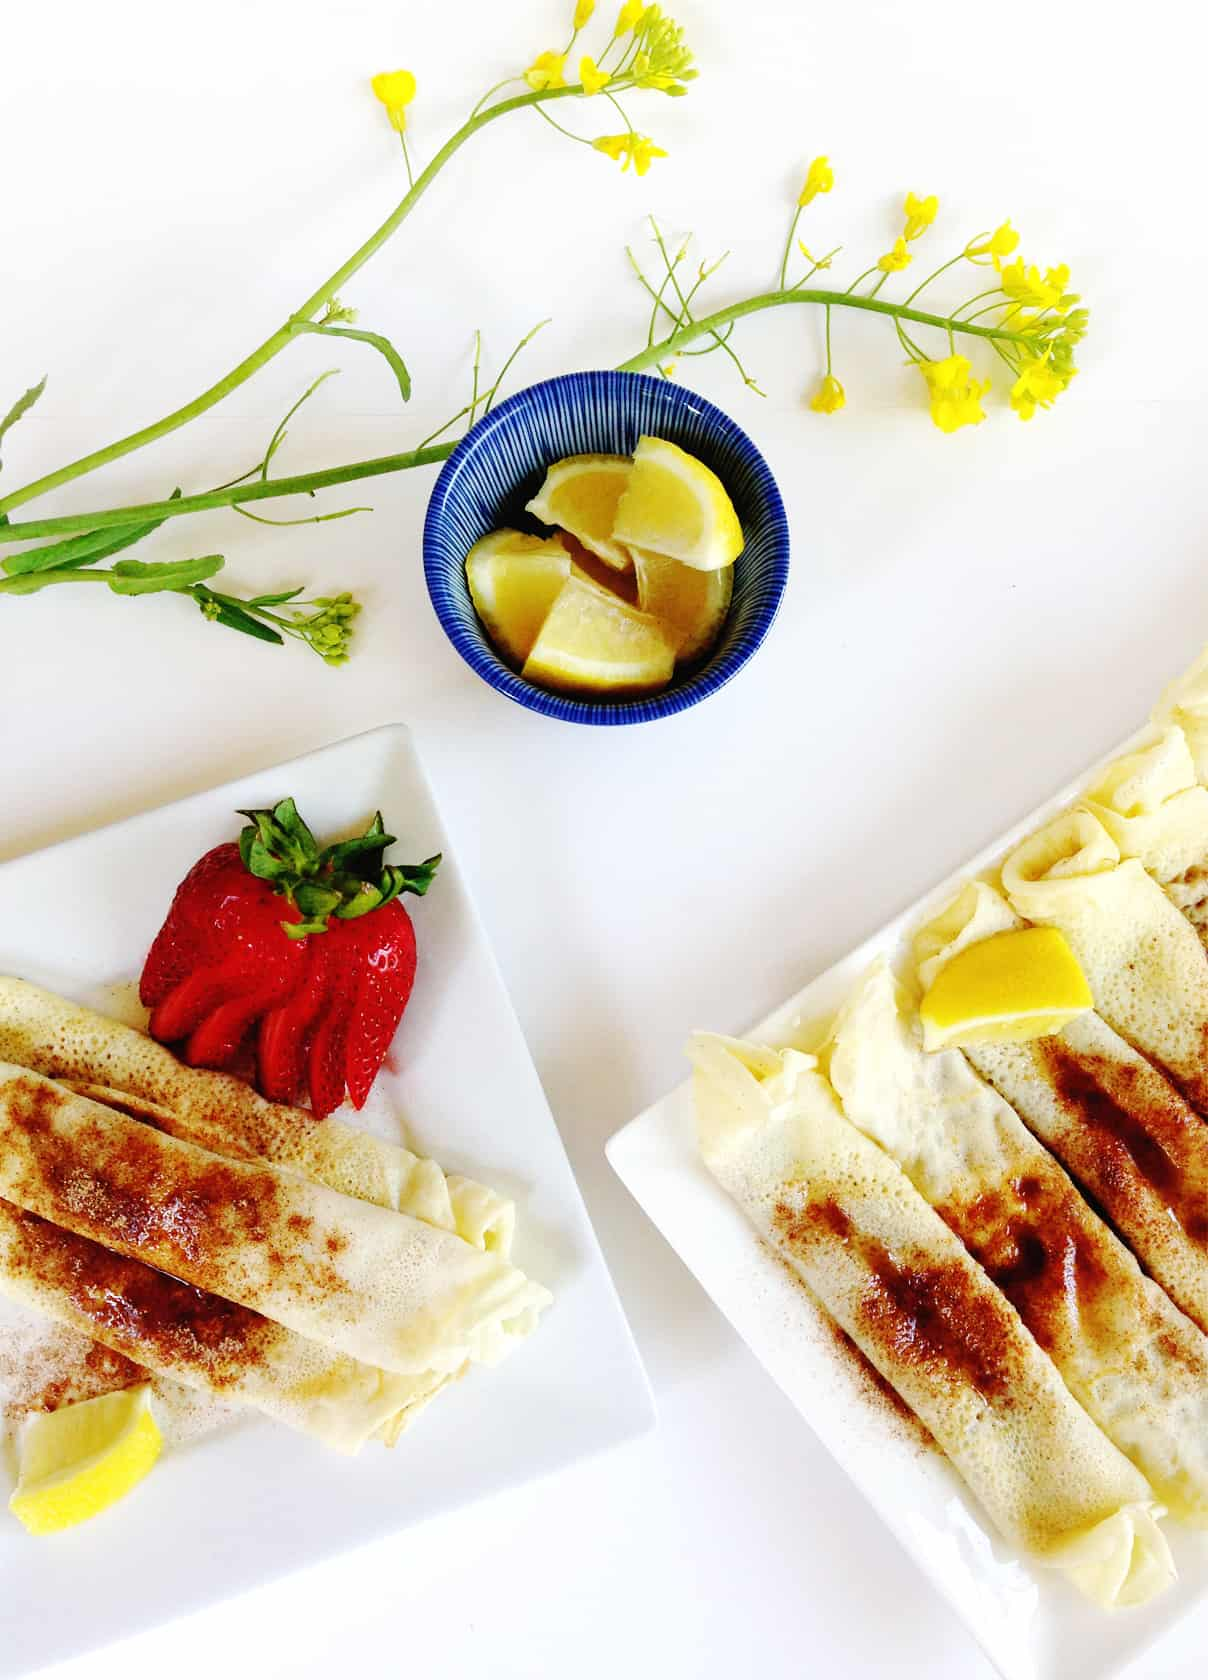 two plates with south african pannekoek pancakes and garnished with lemon wedges and fresh strawberries